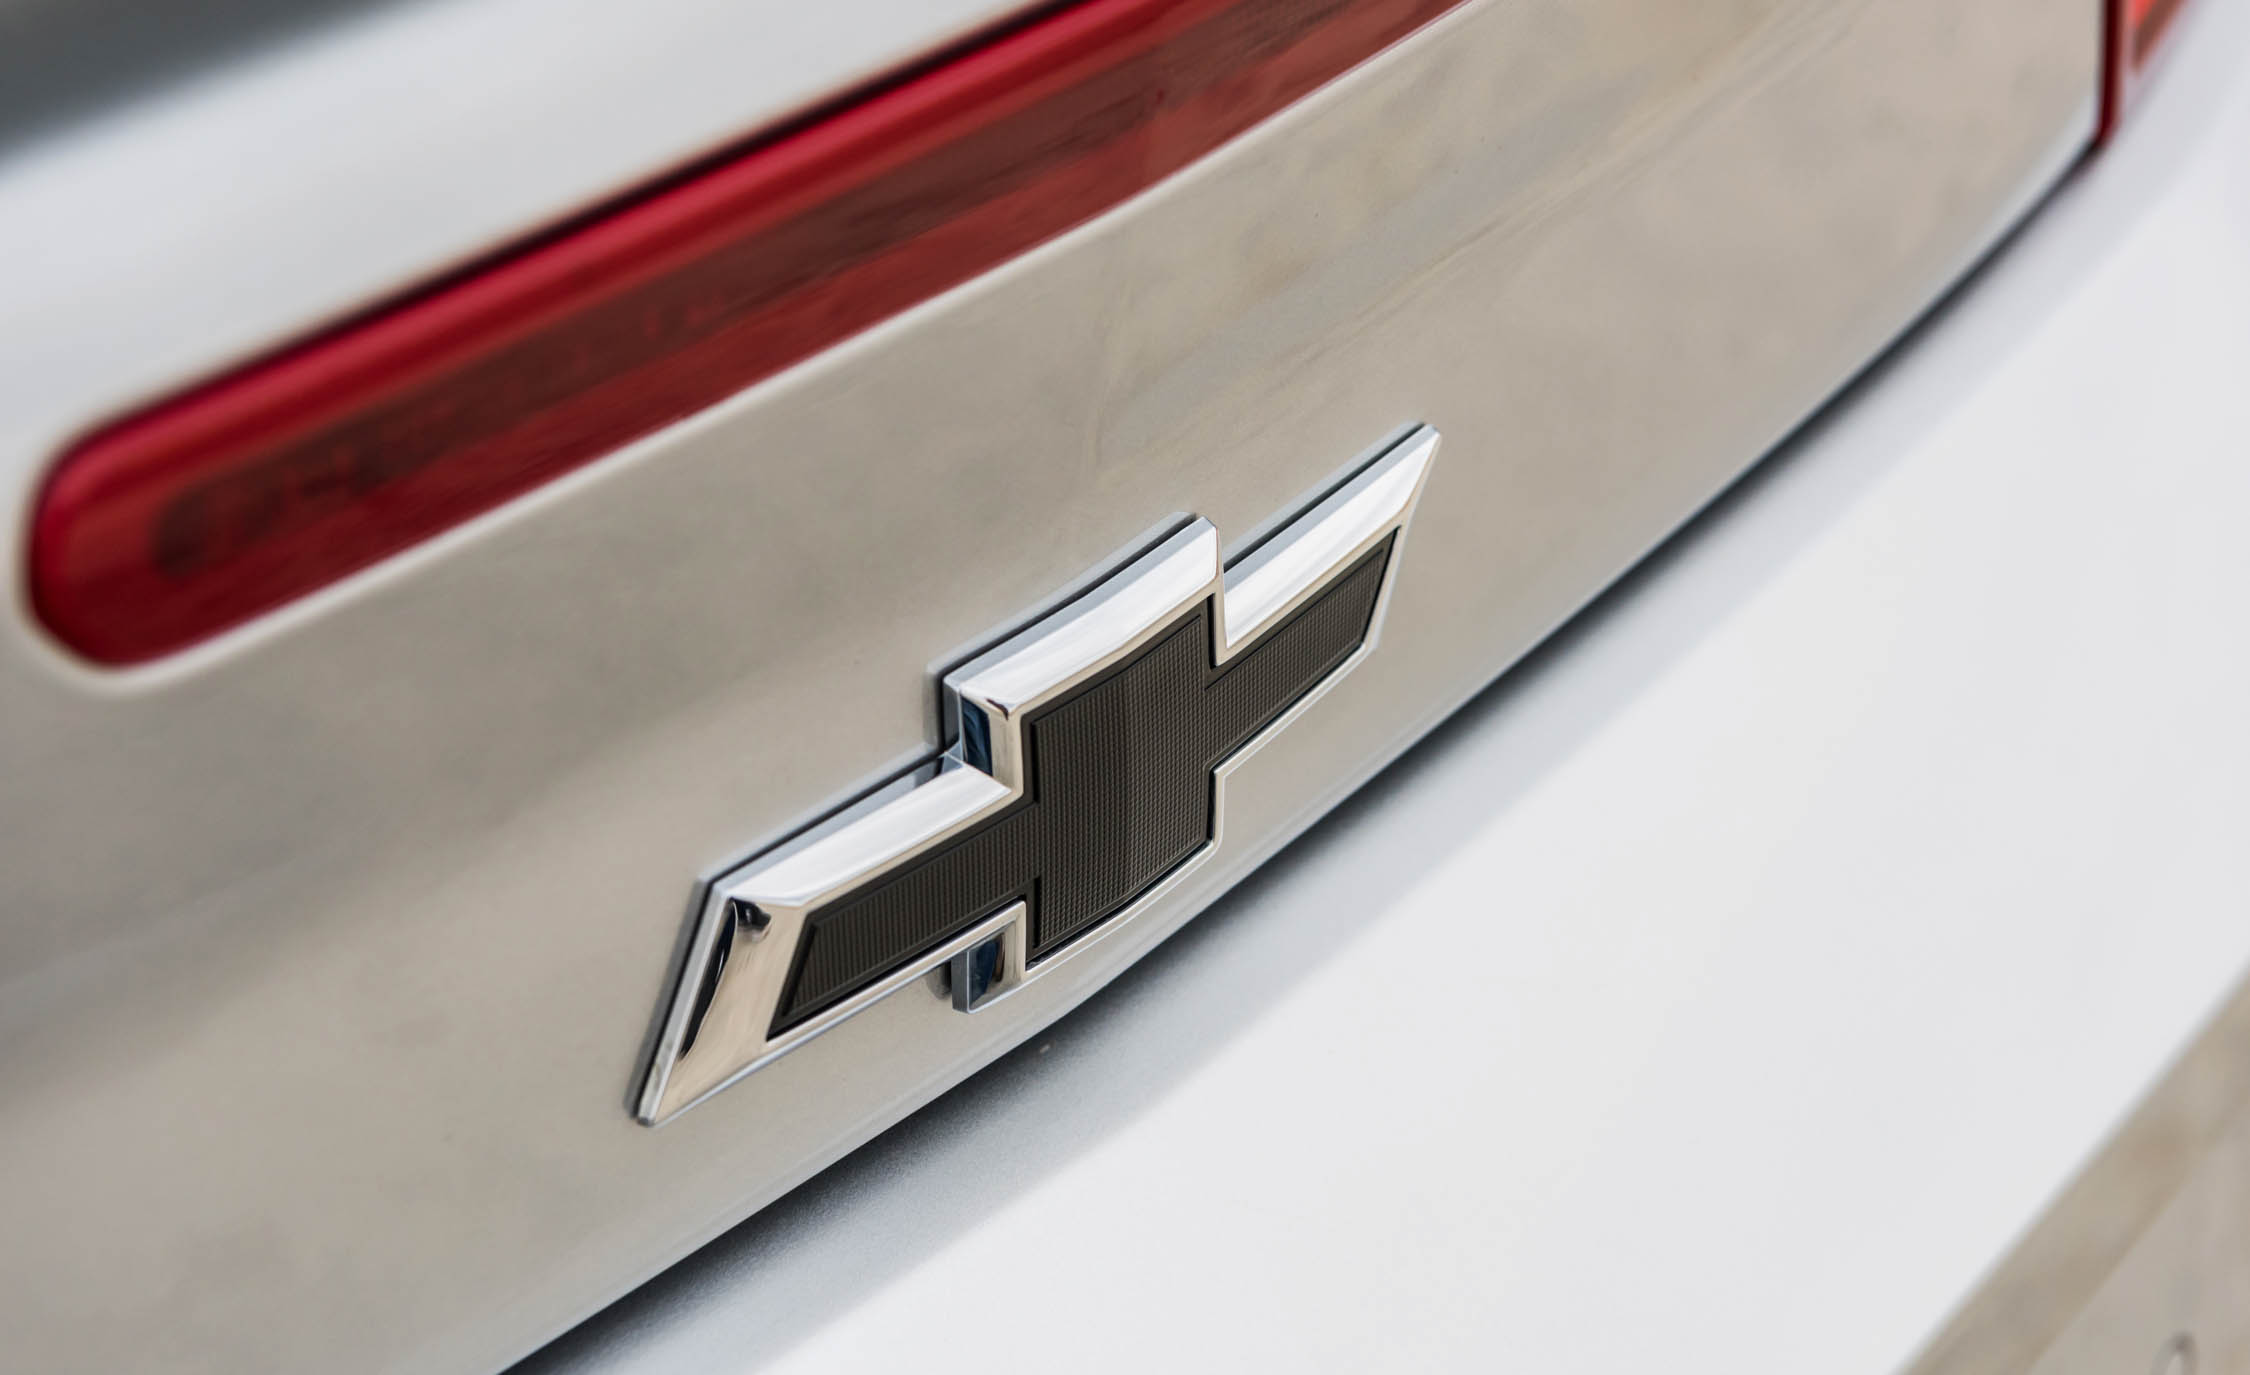 2017 Chevrolet Camaro ZL1 White Exterior View Rear Badge Emblem (Photo 52 of 62)